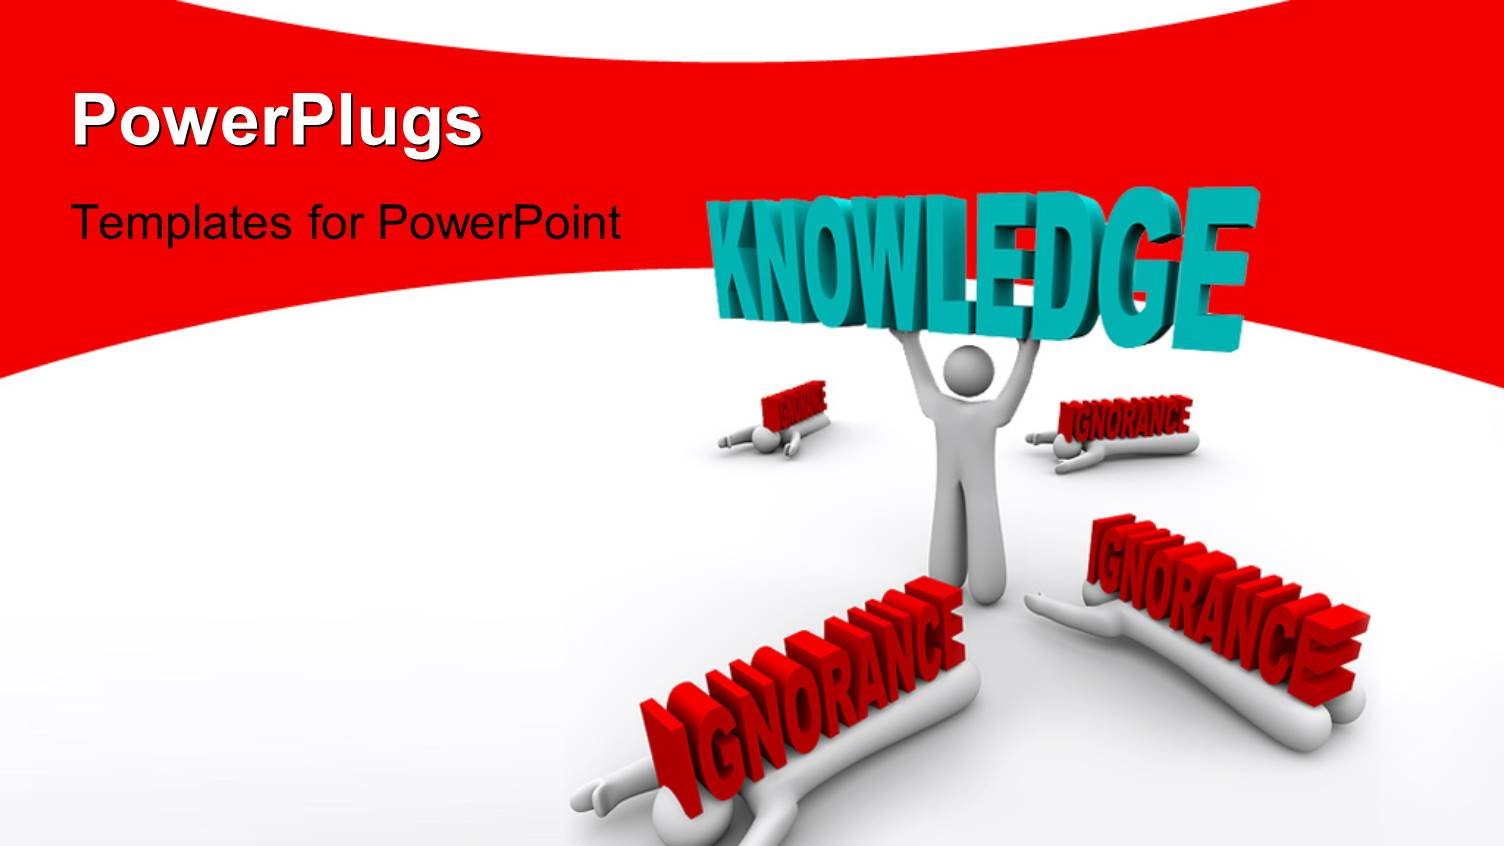 5000 knowledge powerpoint templates w knowledge themed backgrounds ppt theme consisting of 3d man lifts up word knowledge with burden of ignorance on colleagues toneelgroepblik Image collections